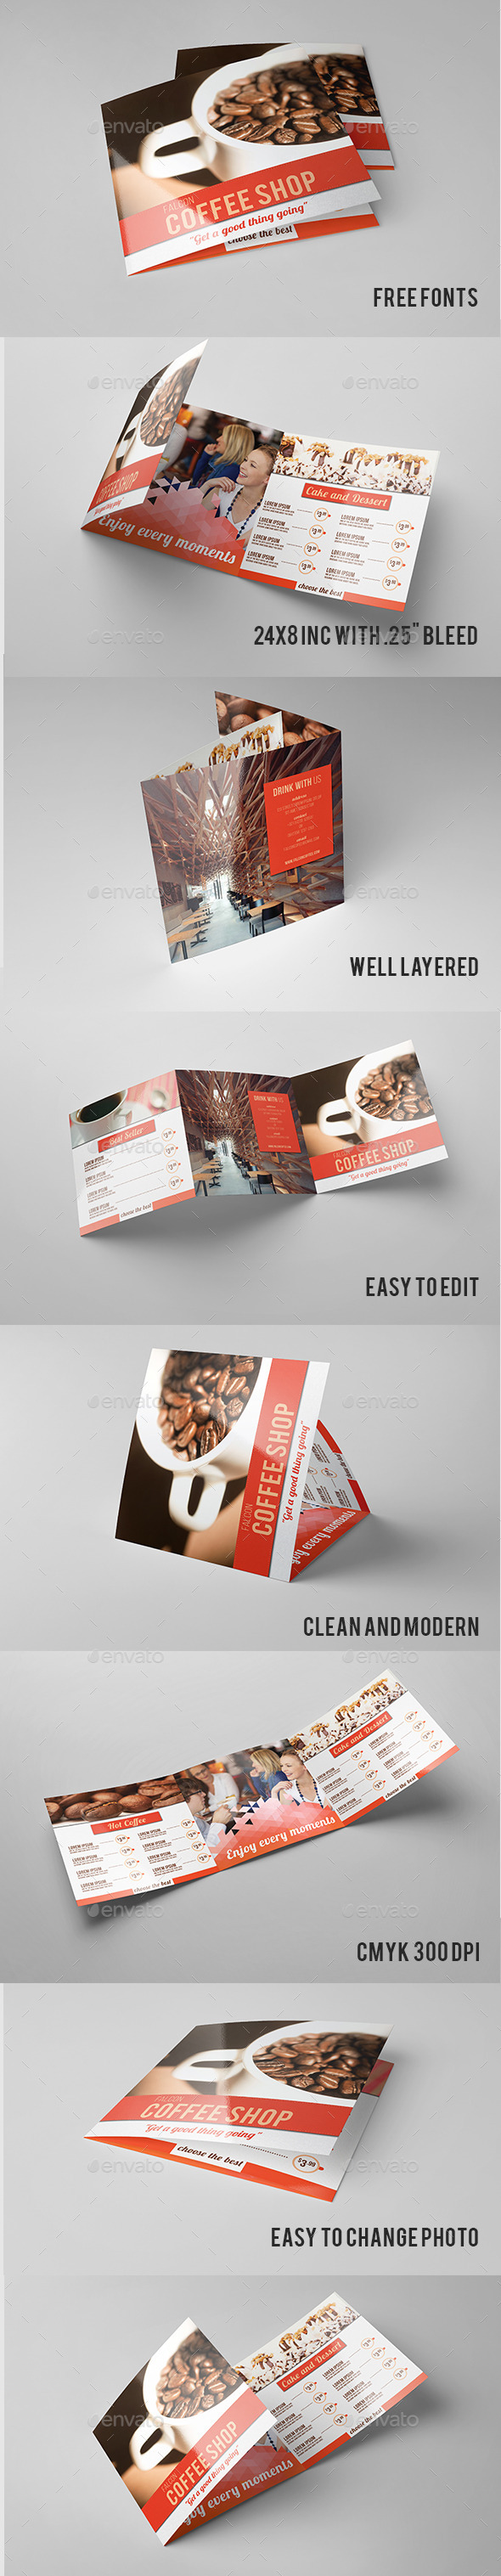 Minimal Square Coffee Shop Trifold - Informational Brochures